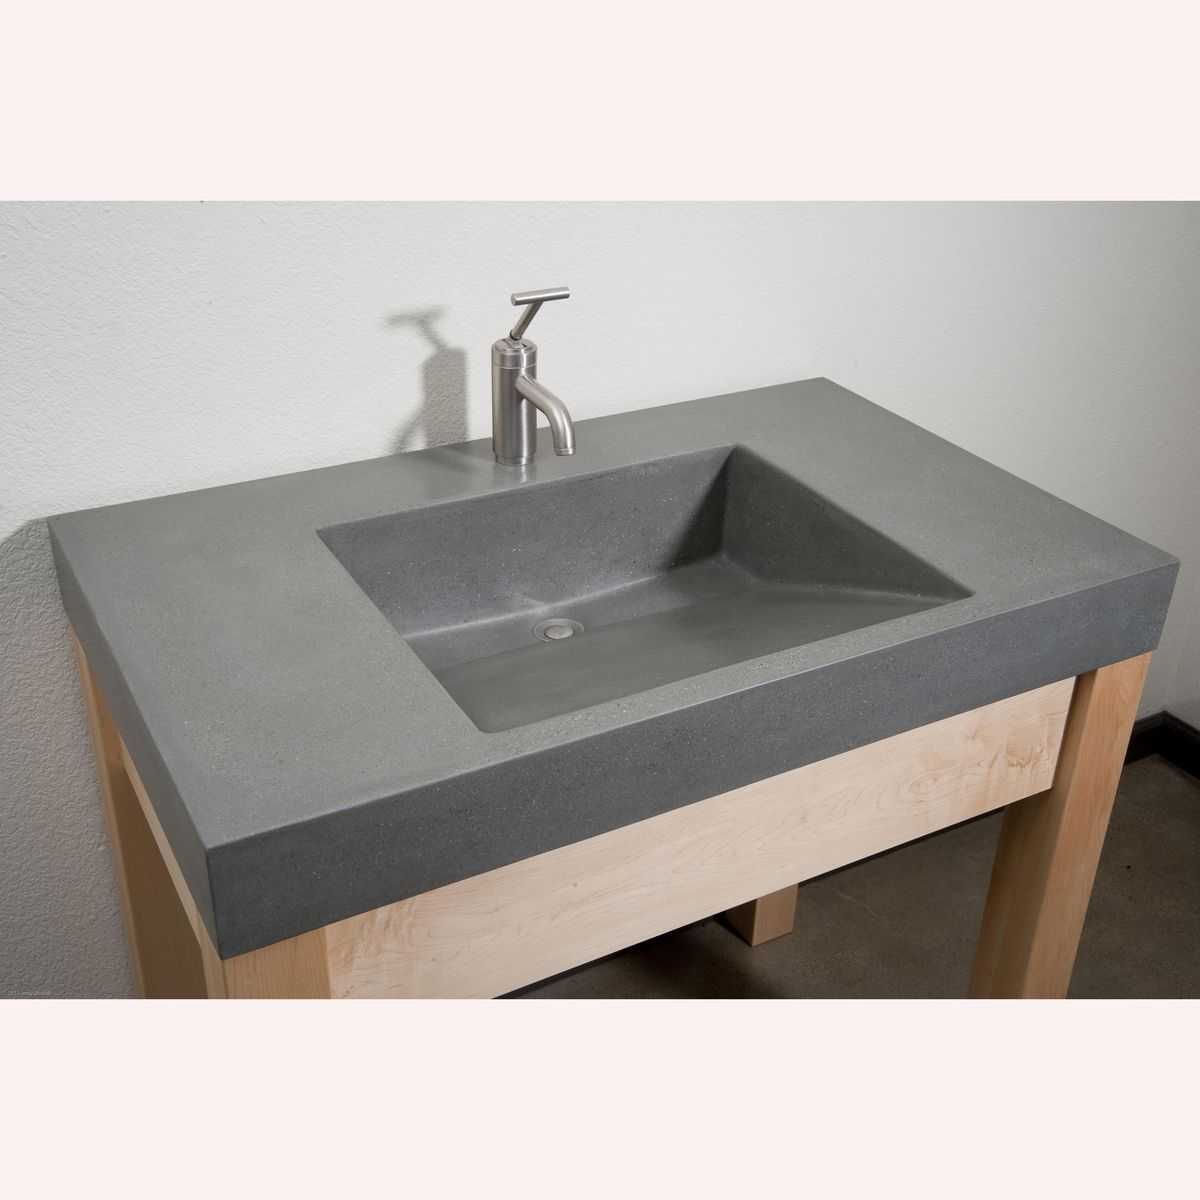 Polished Concrete Vanity with Integrated Ramp Sink On Custom Made